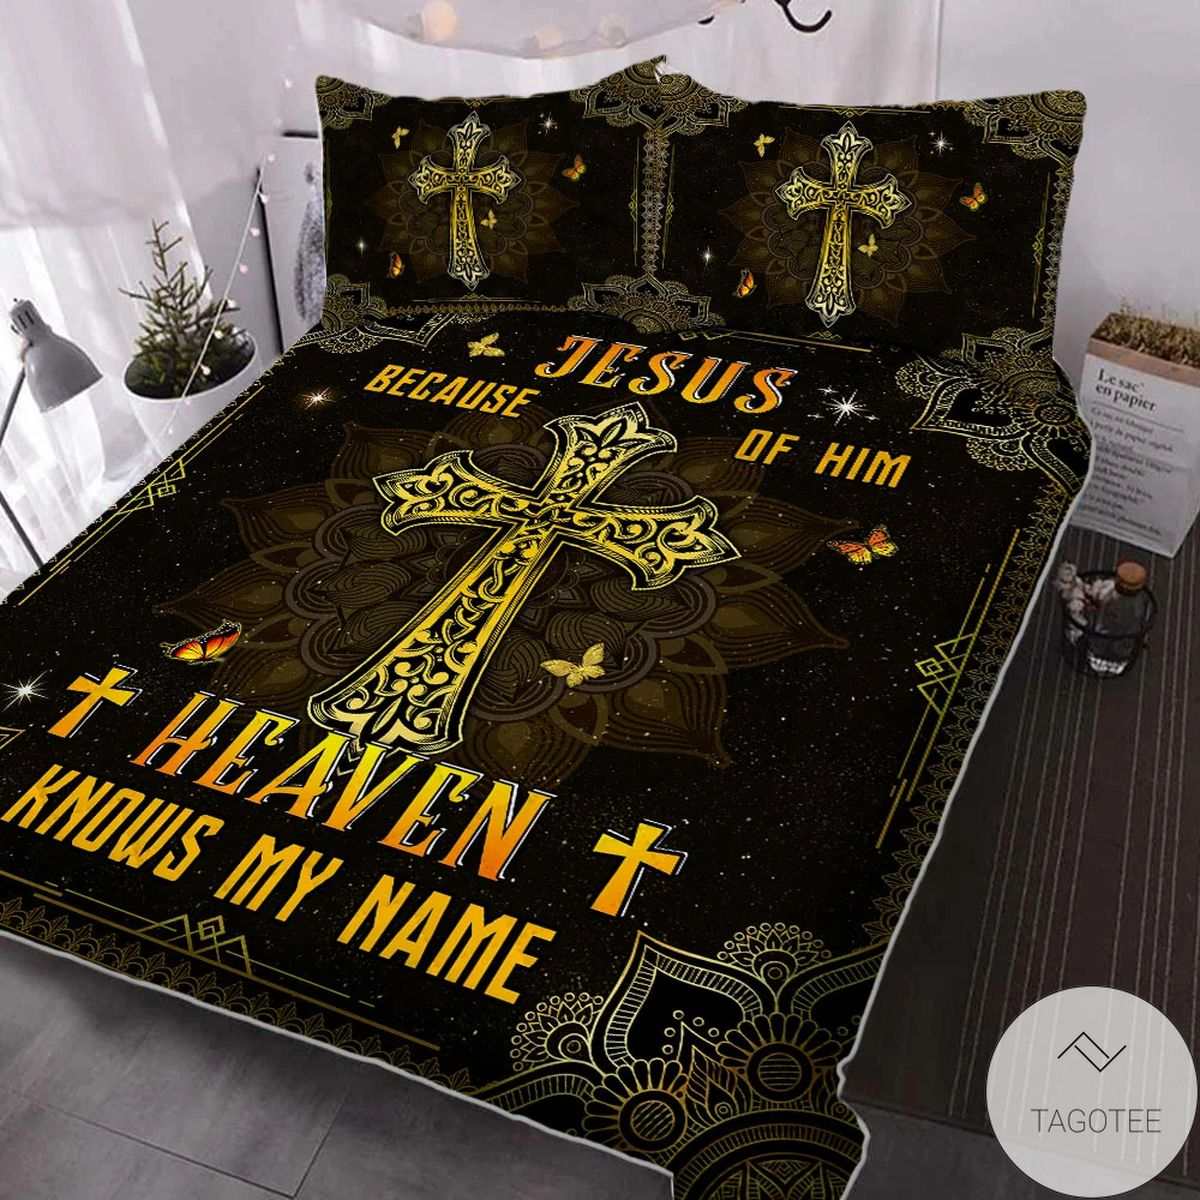 Best Shop Because Of Him Heaven Knows My Name Jesus Bedding Set